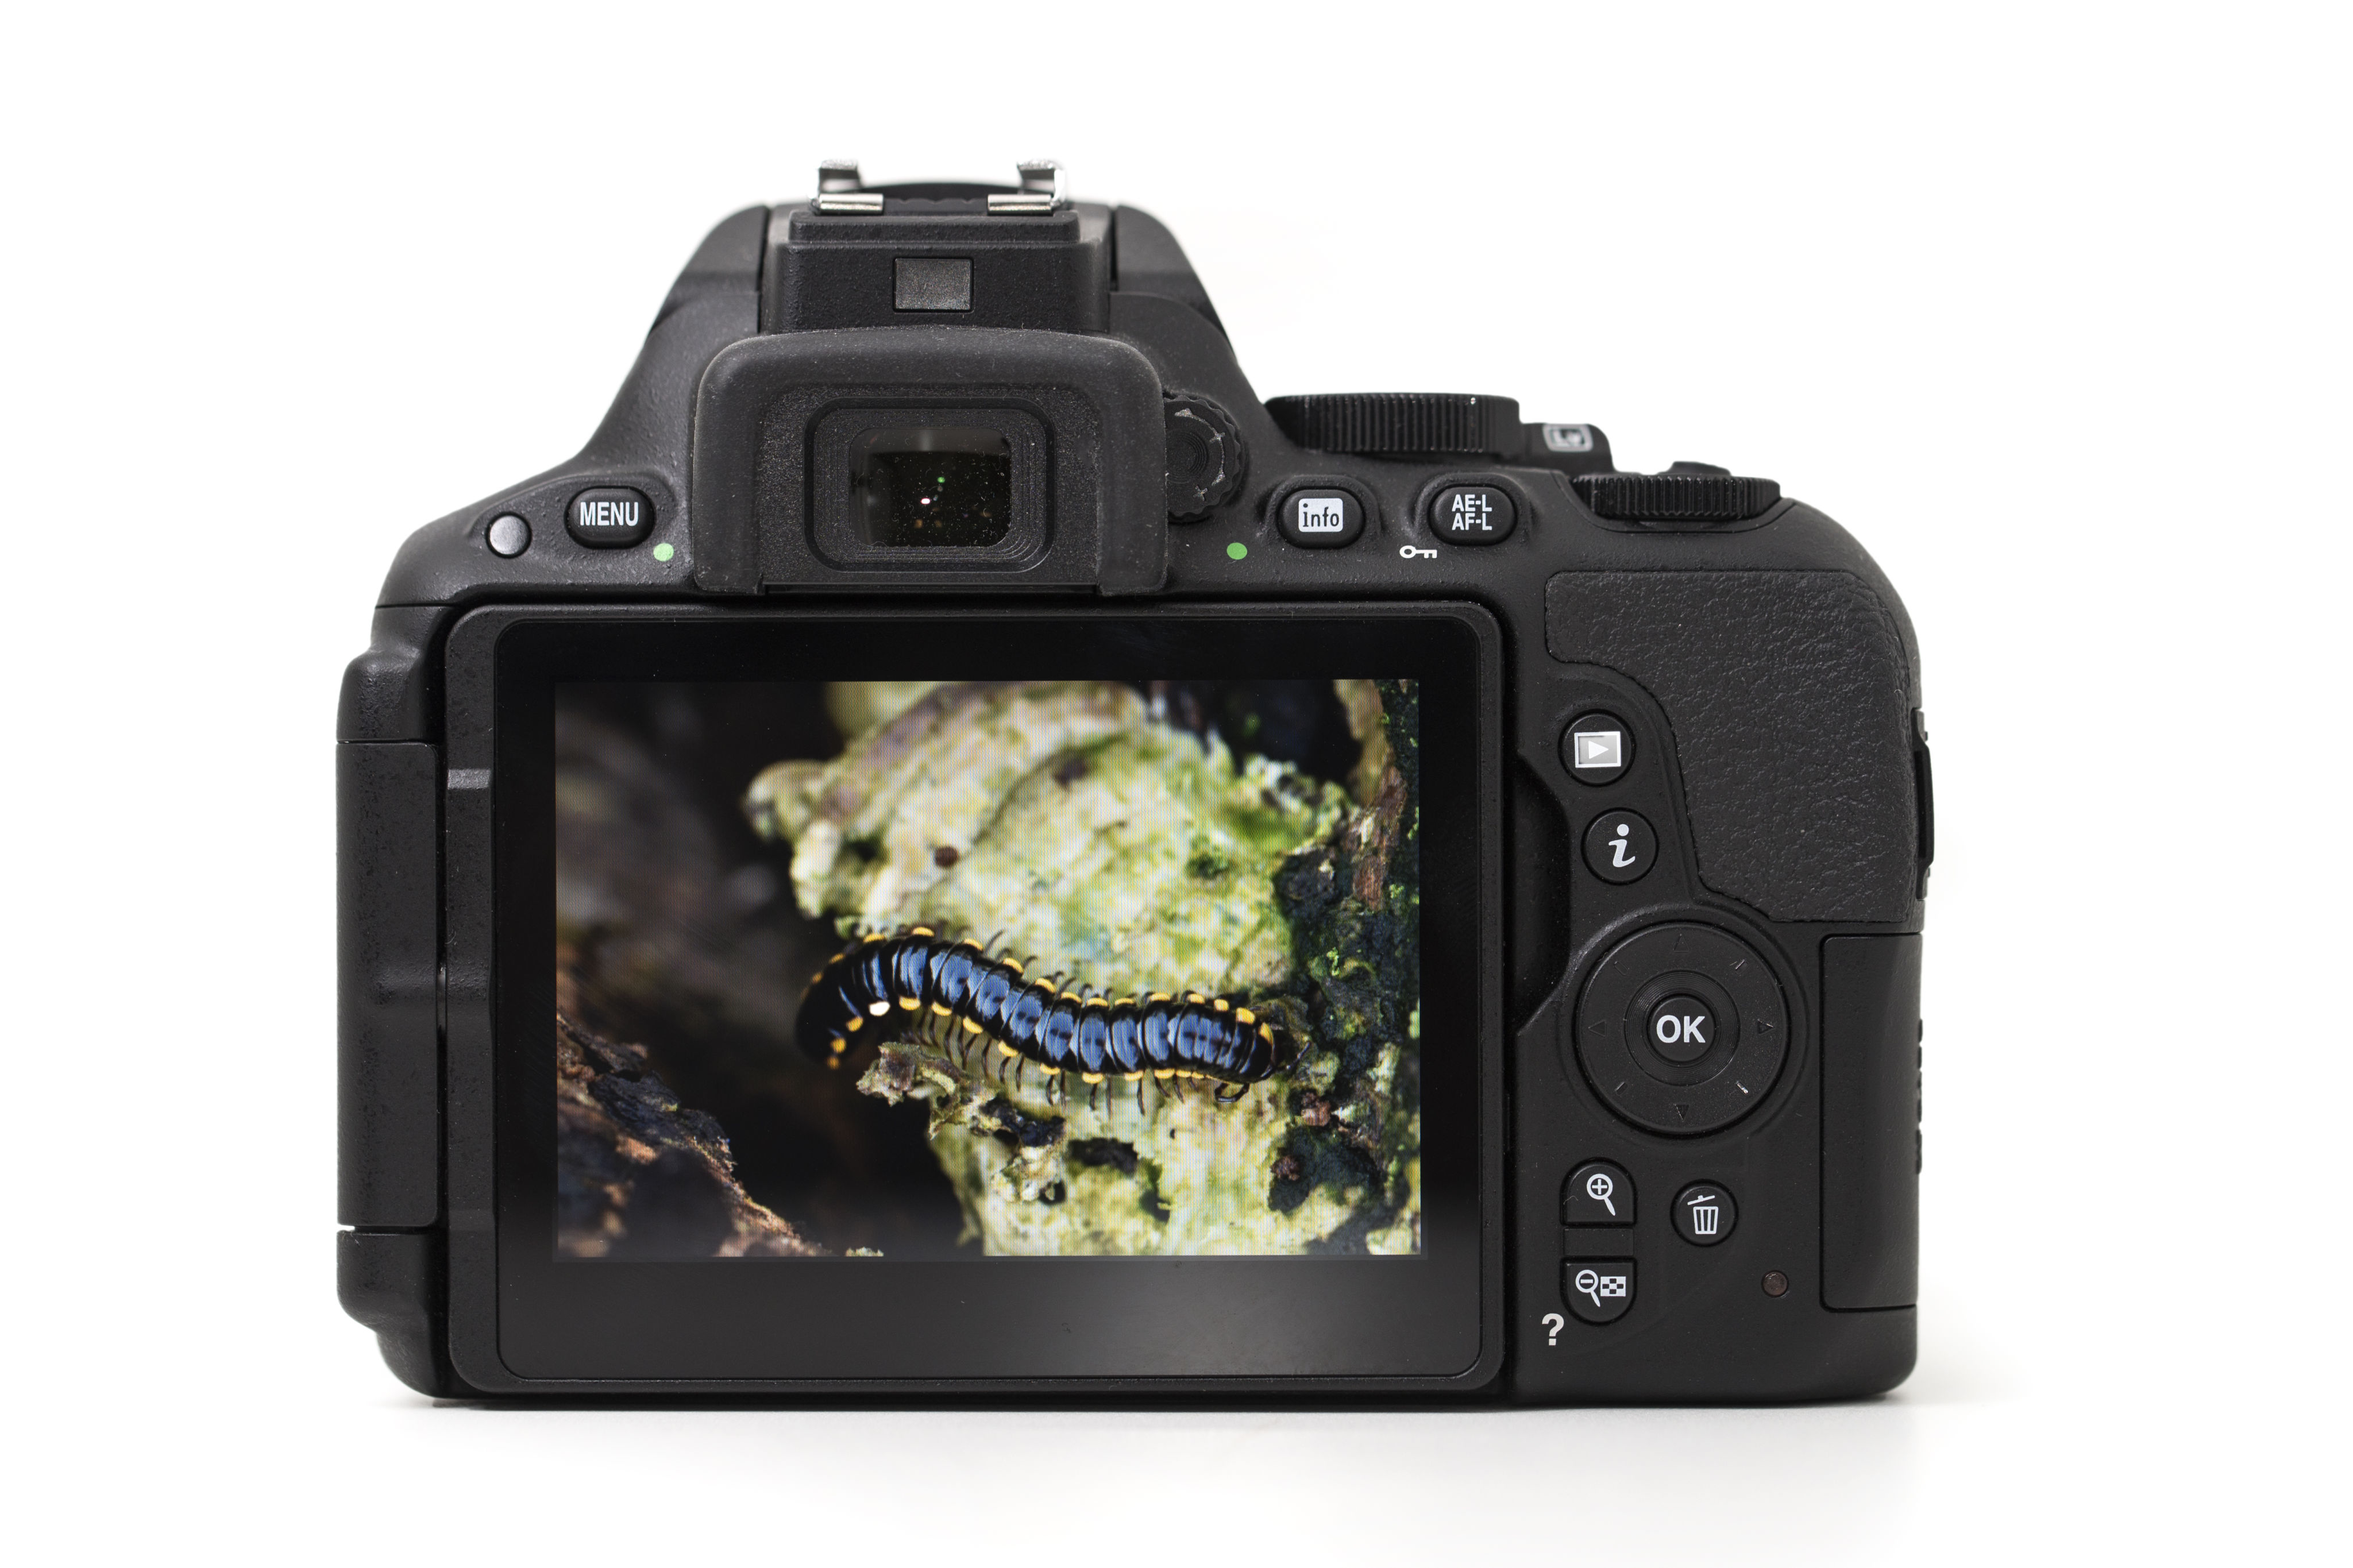 Controls: despite the shrinking of the body size over the D5300, the D5500 control layout remains largely the same